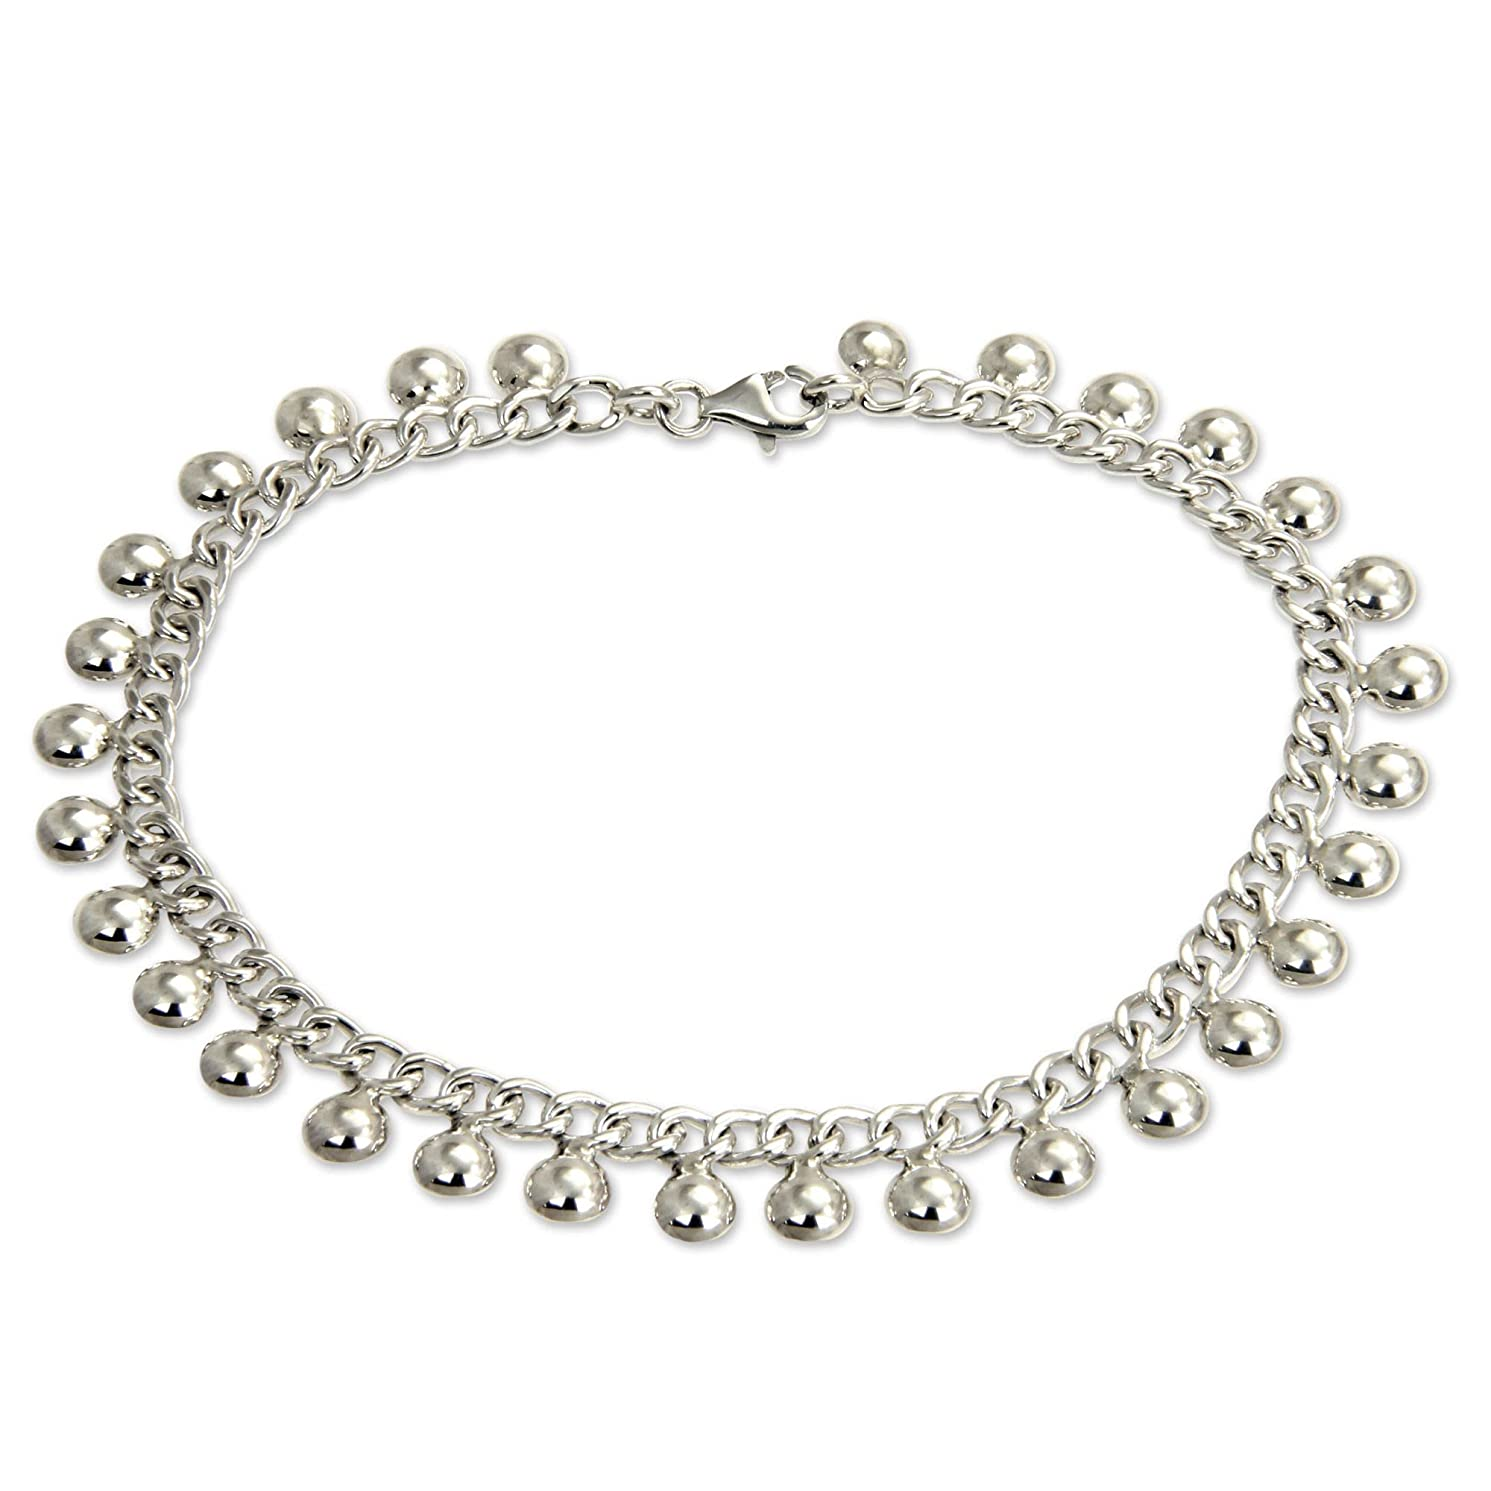 NOVICA .925 Sterling Silver Handmade Chain Charm Anklet 'Palace Charms', 10.5